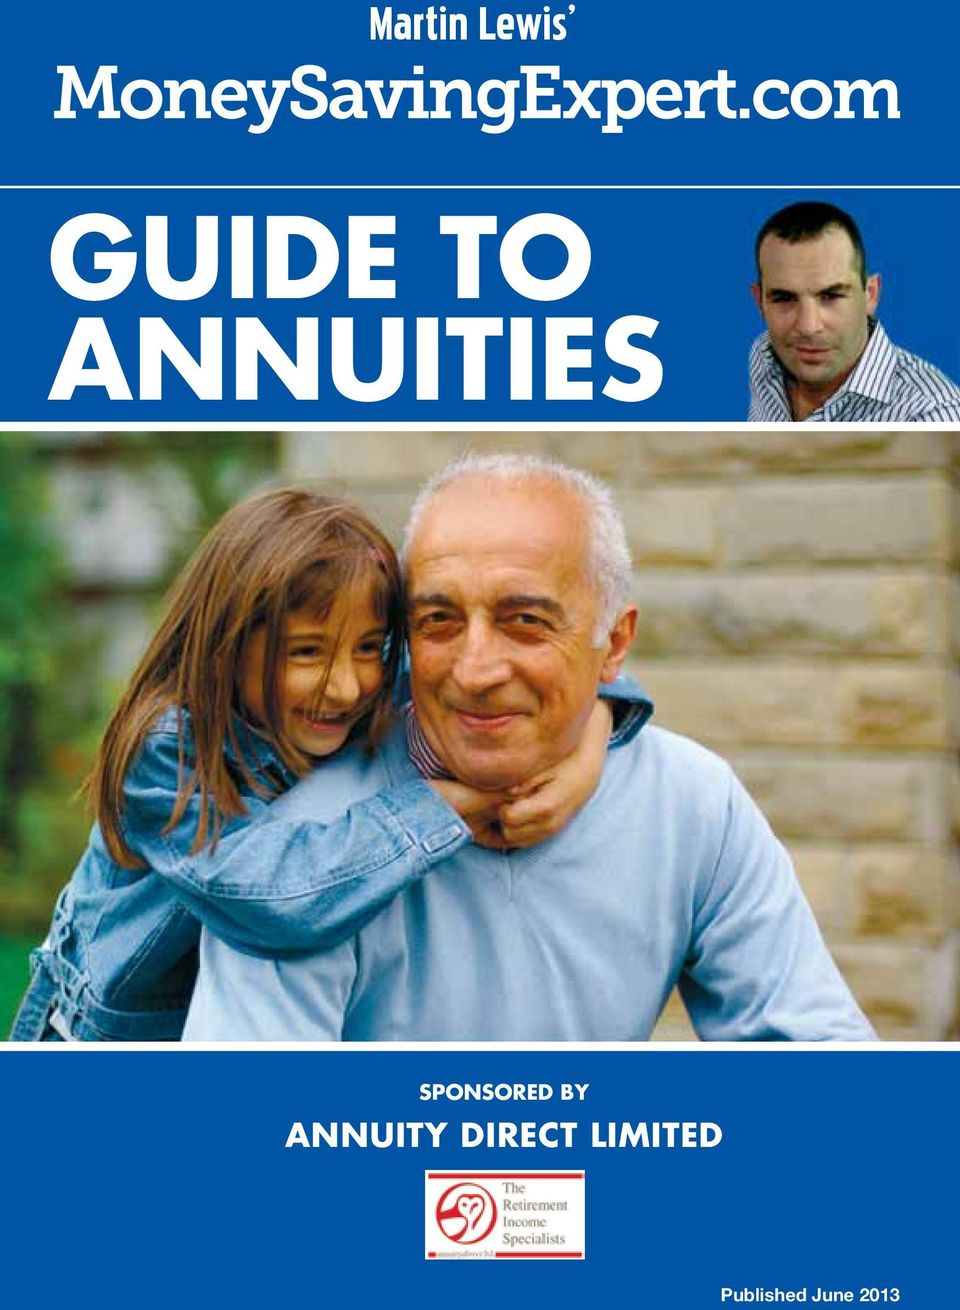 BY ANNUITY DIRECT